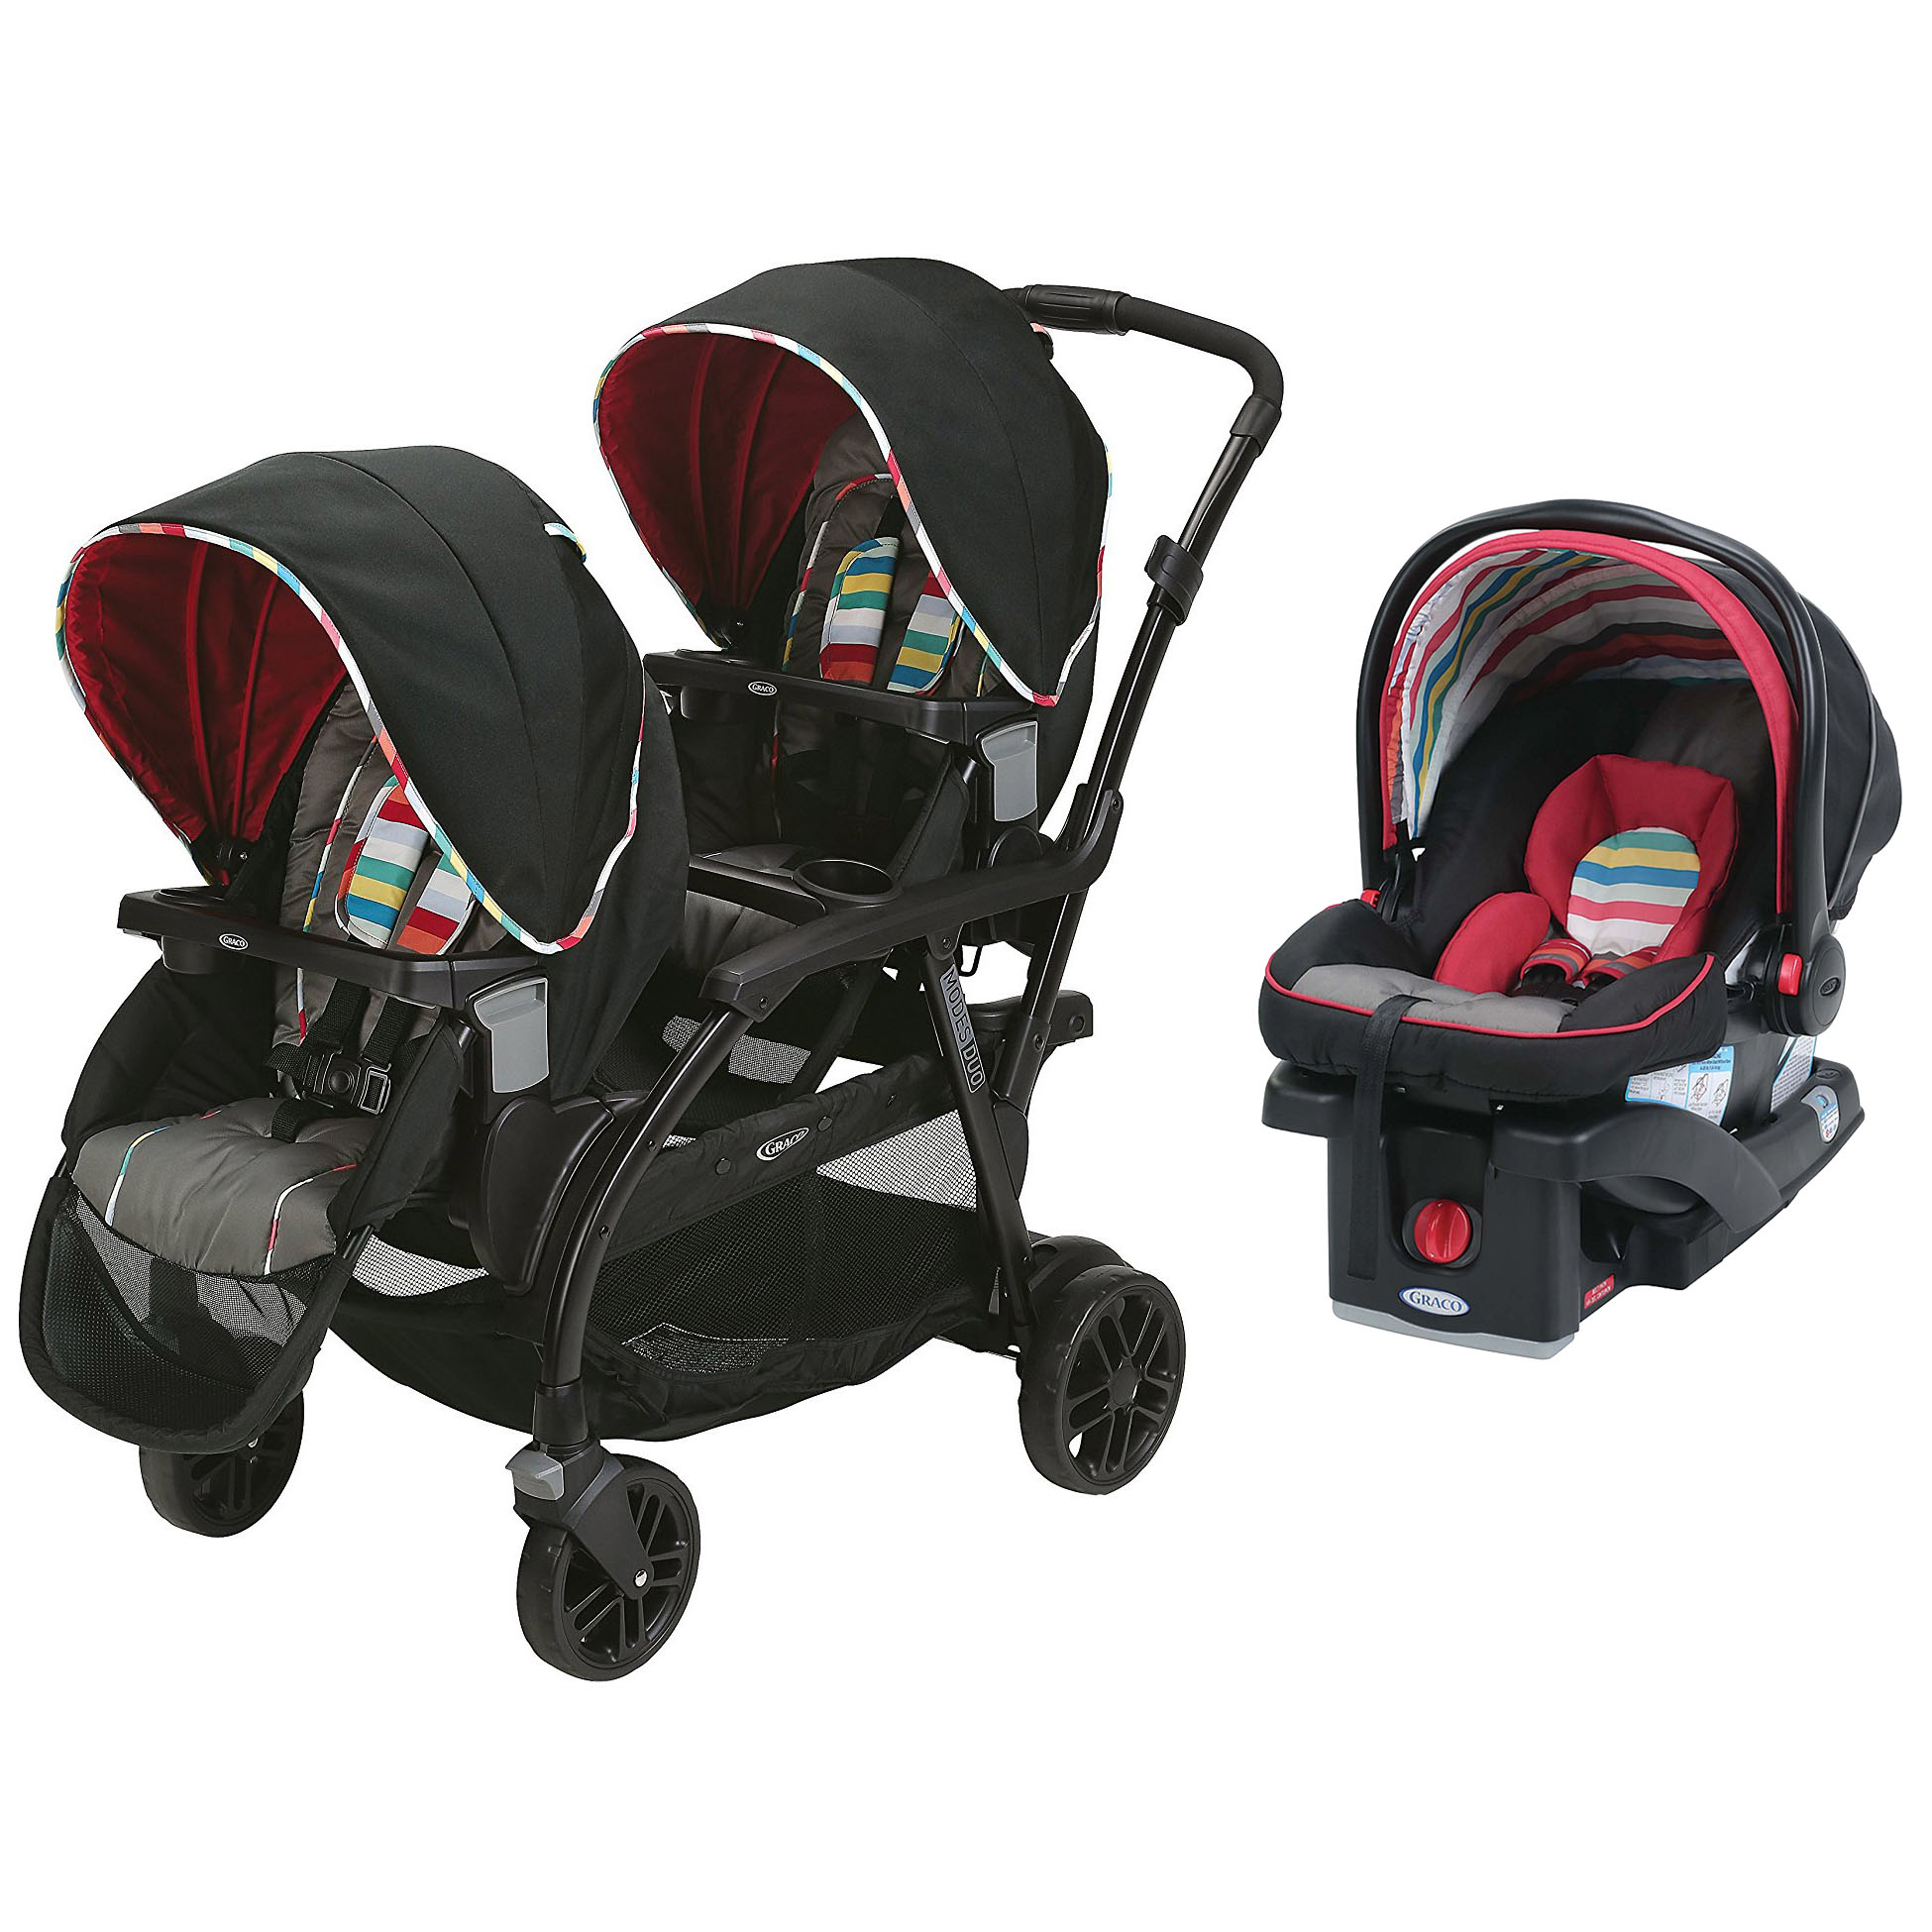 Graco Travel System Modes Duo Stroller & SnugRide Click Connect Infant Car Seat by Graco